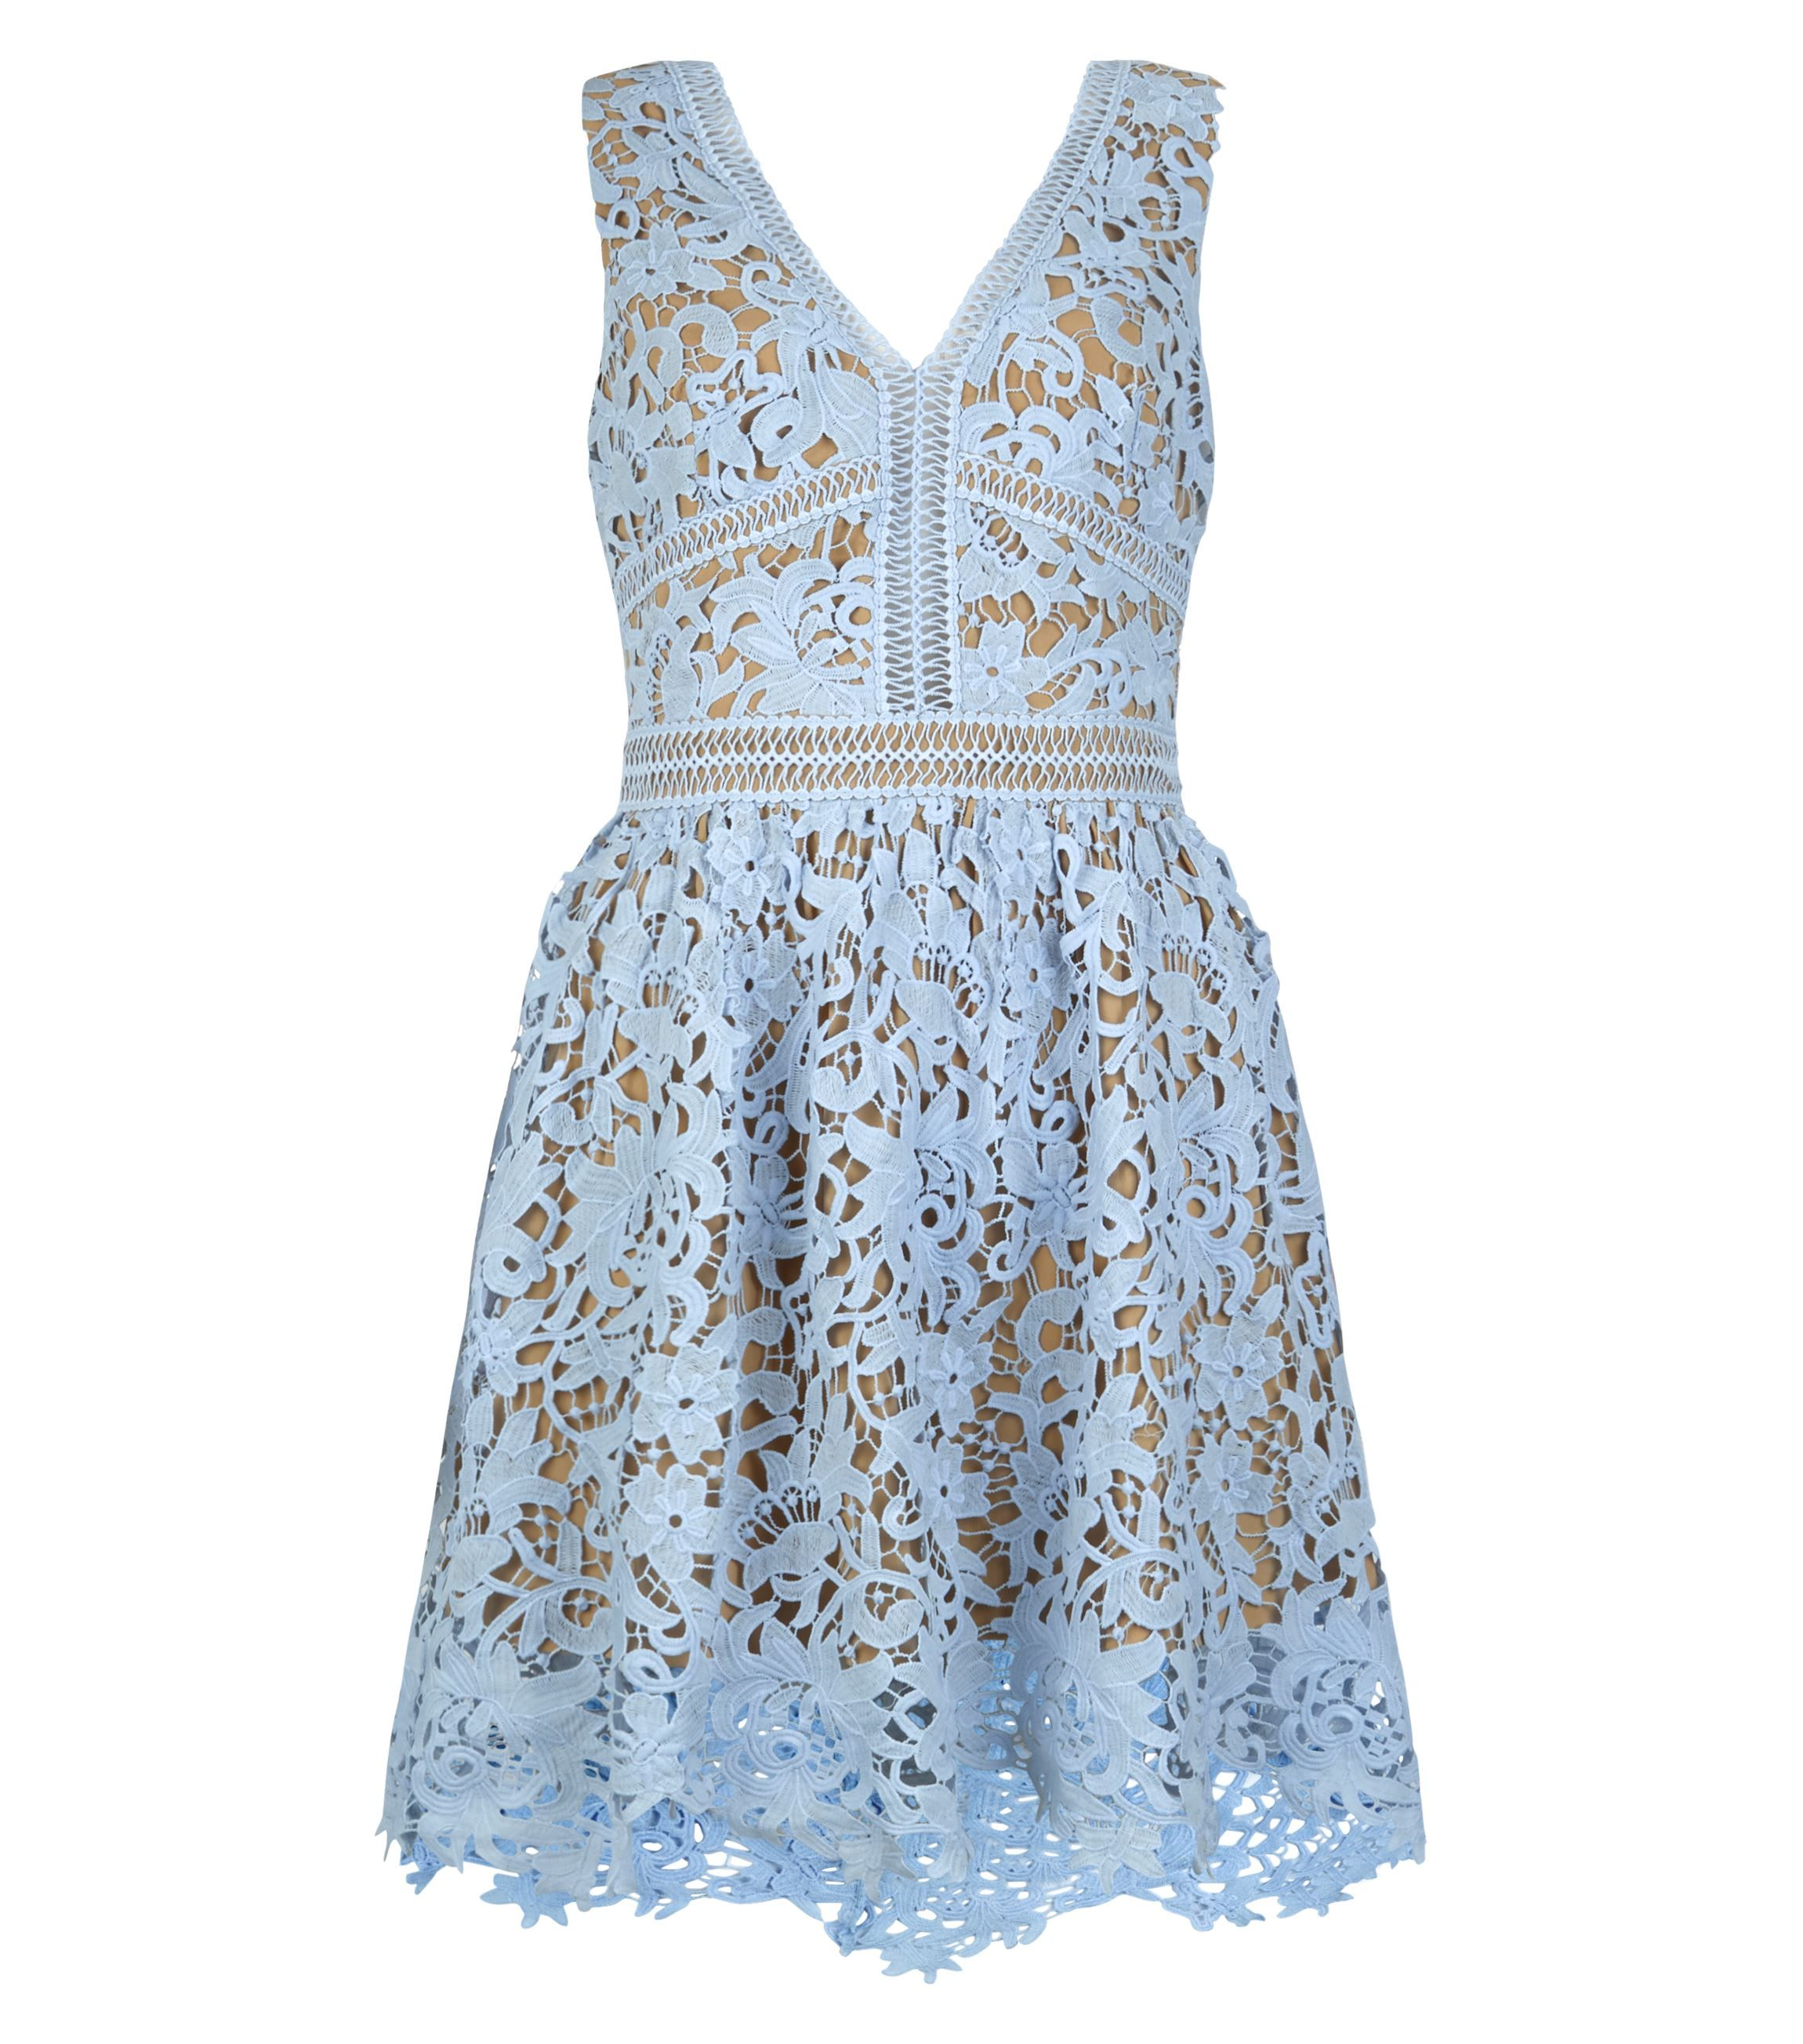 23 gorgeous wedding guest dresses for spring summer 2016 for Cute dress for wedding guest